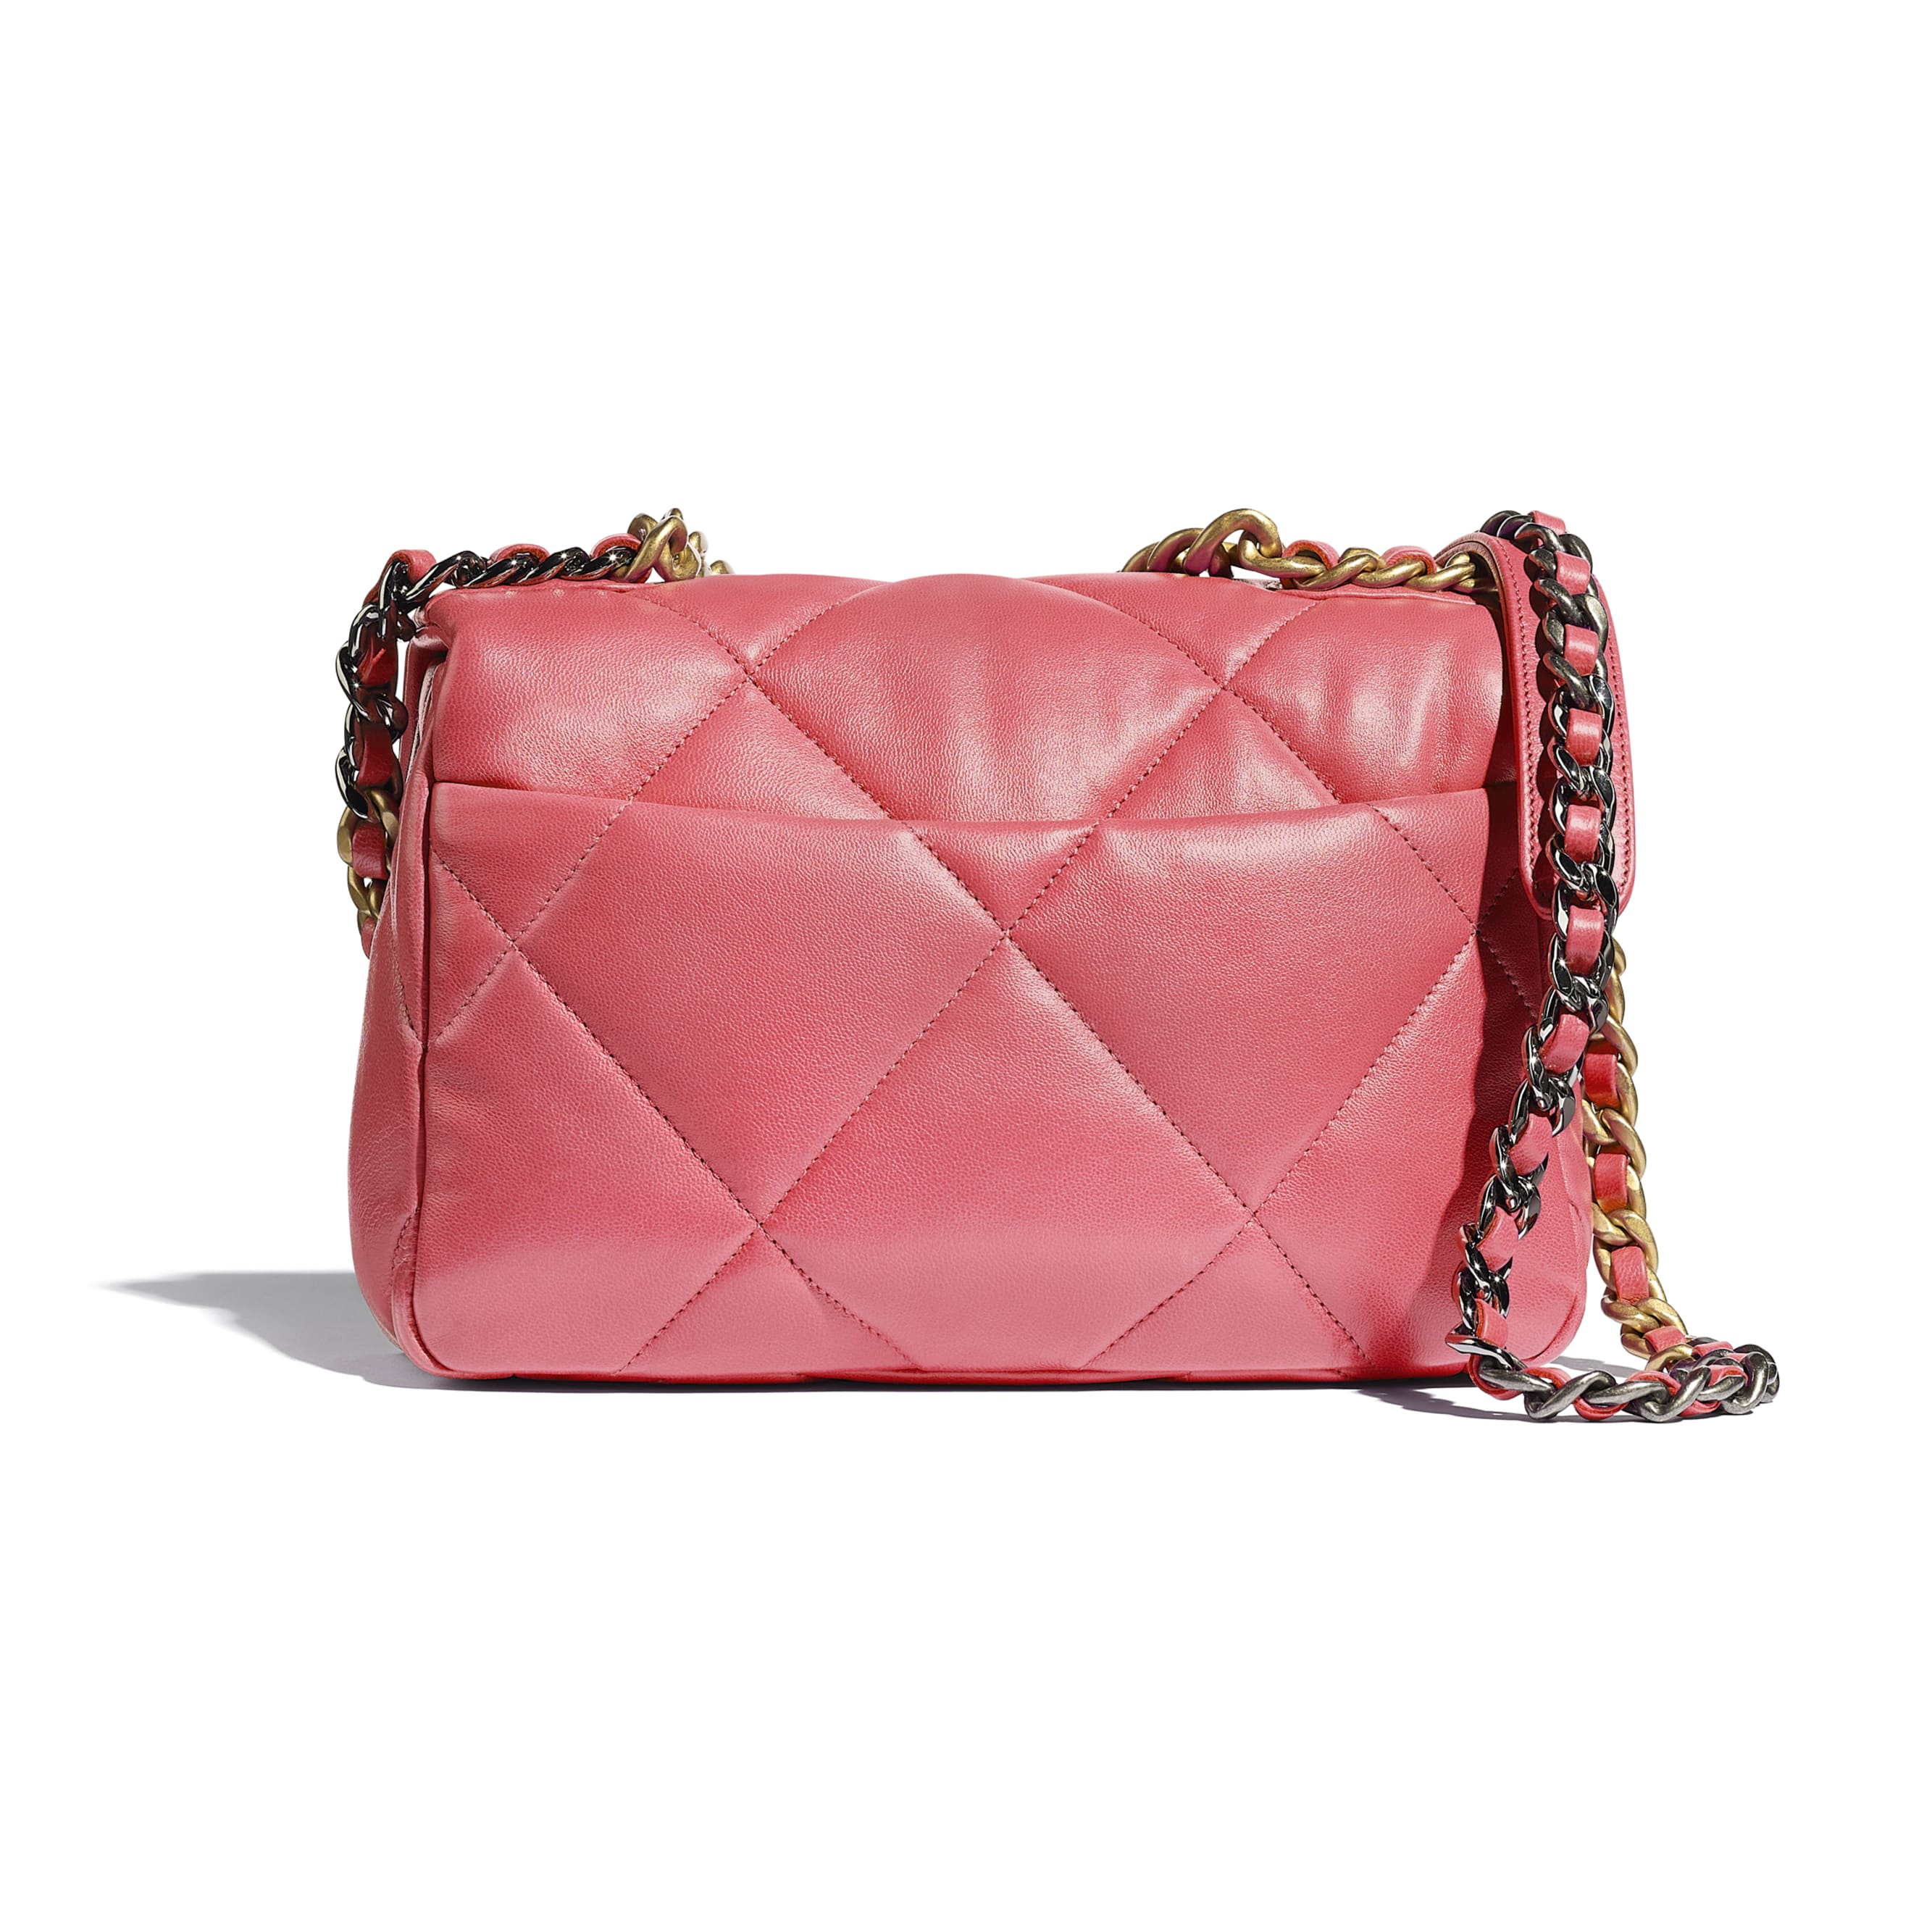 CHANEL 19 Flap Bag - Coral - Lambskin, Gold-Tone, Silver-Tone & Ruthenium-Finish Metal - CHANEL - Alternative view - see standard sized version